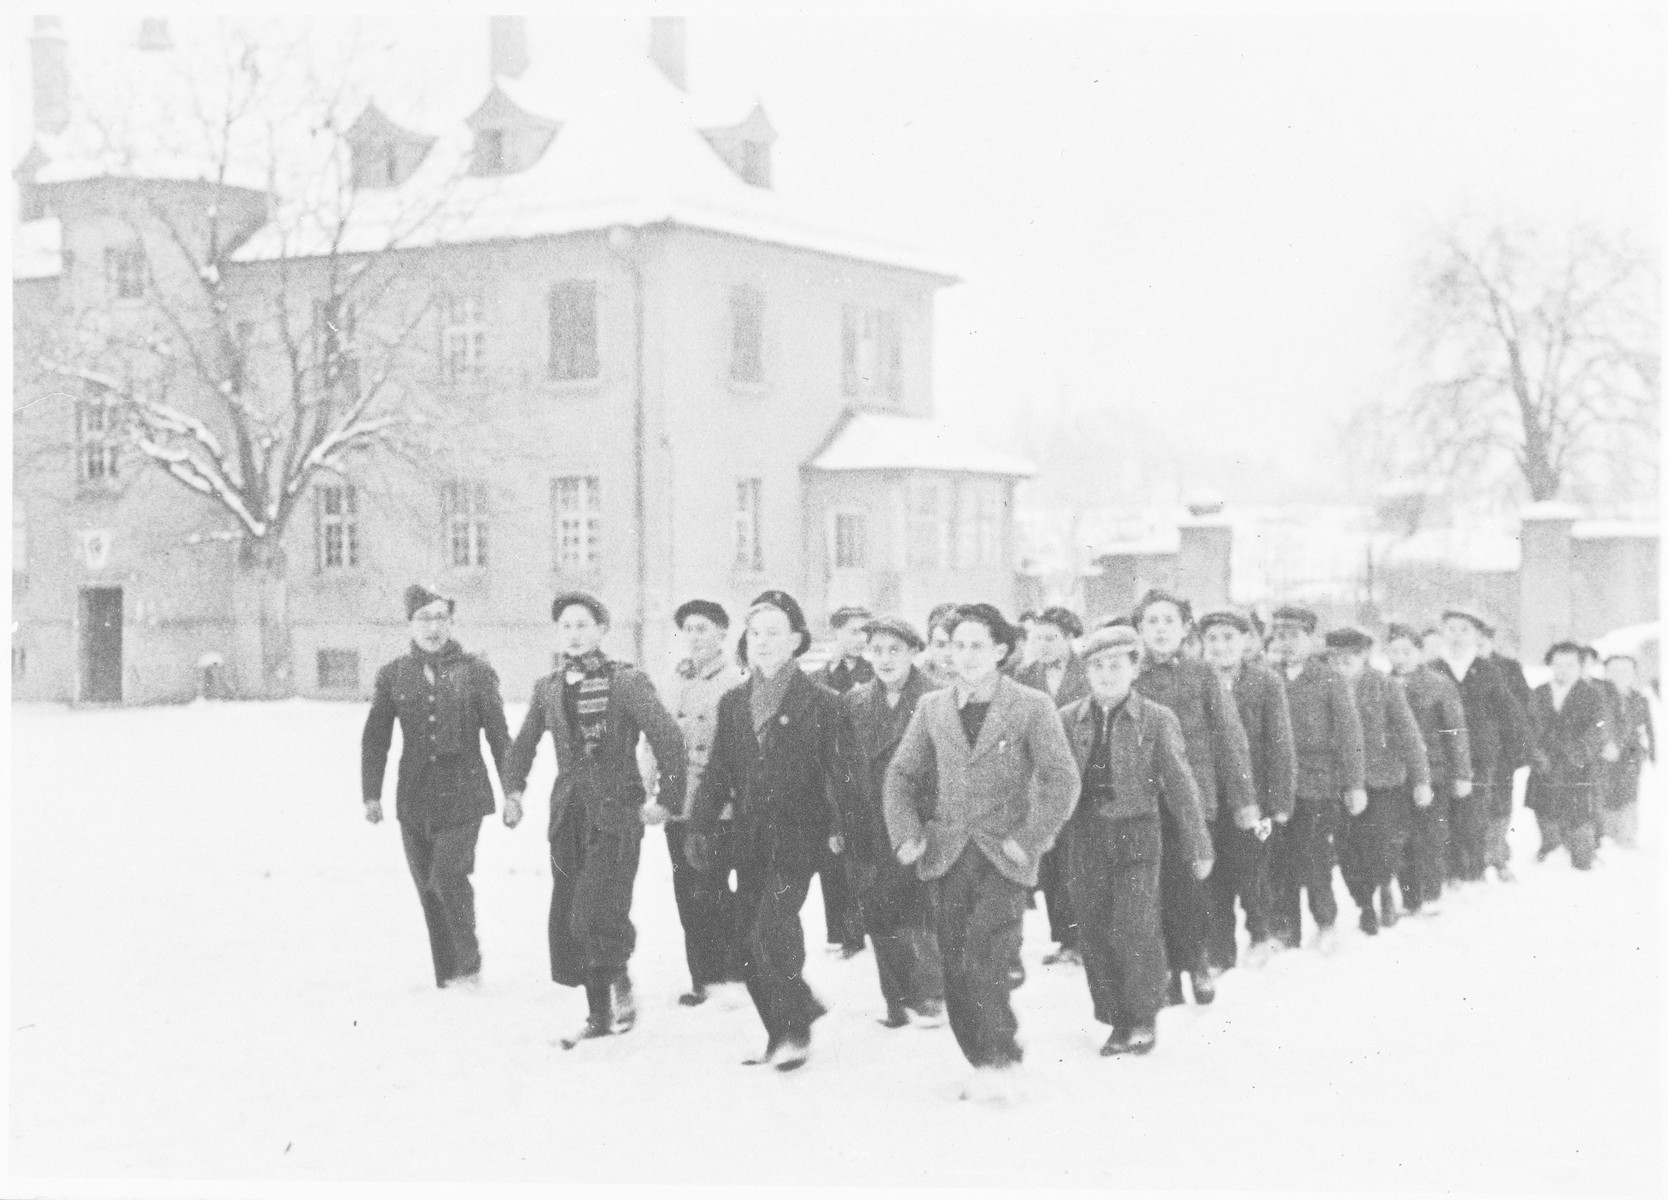 A group of religious boys line up in the snow in the Ulm displaced persons' camp.